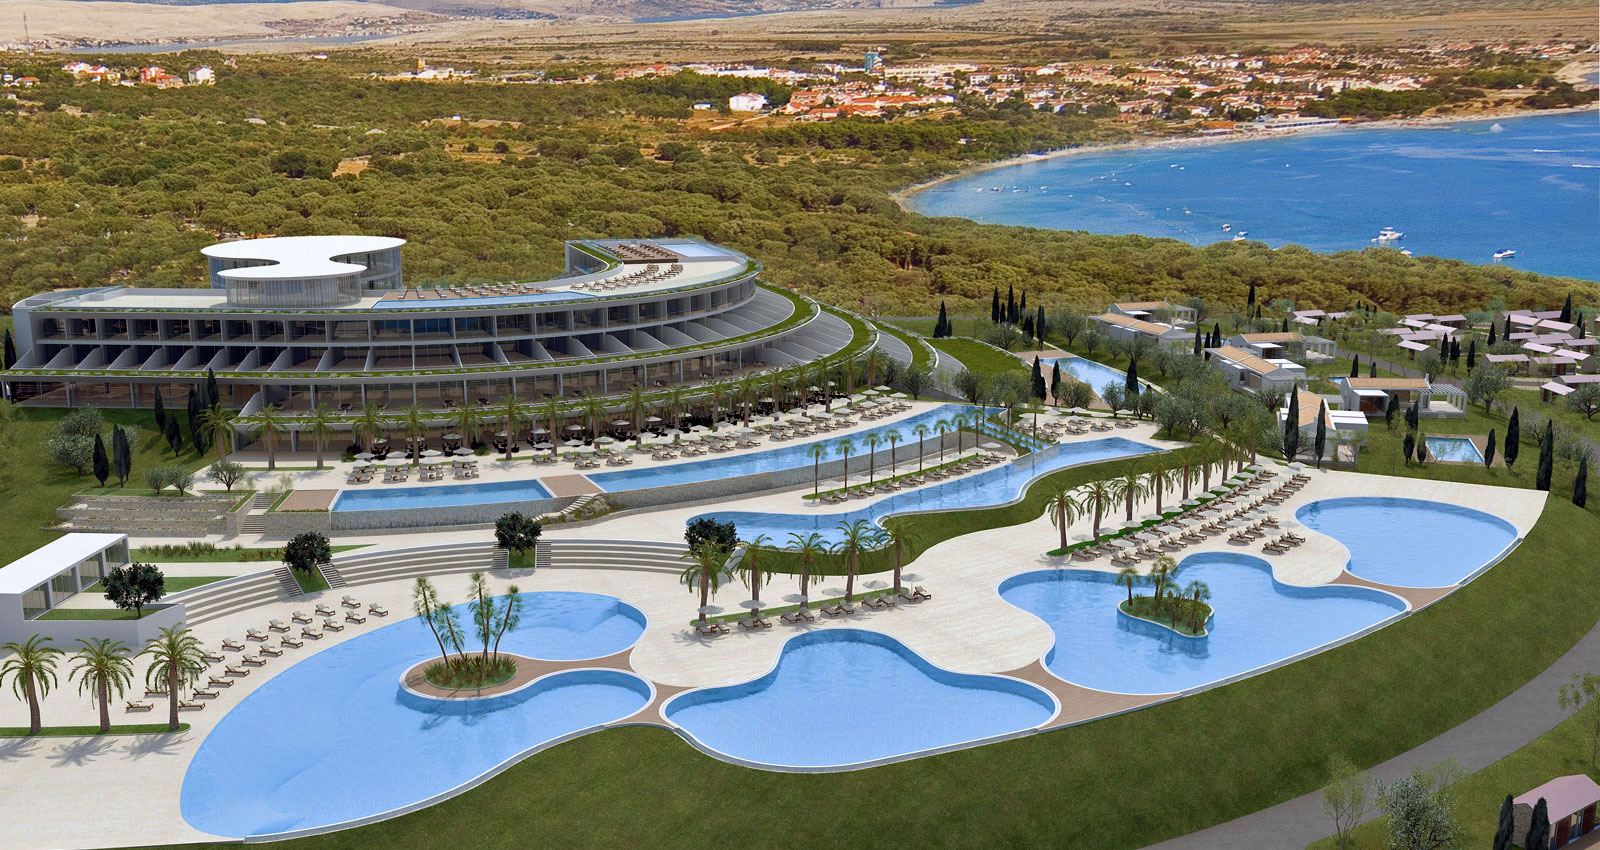 Holiday Resort - Island of pag - Croatia